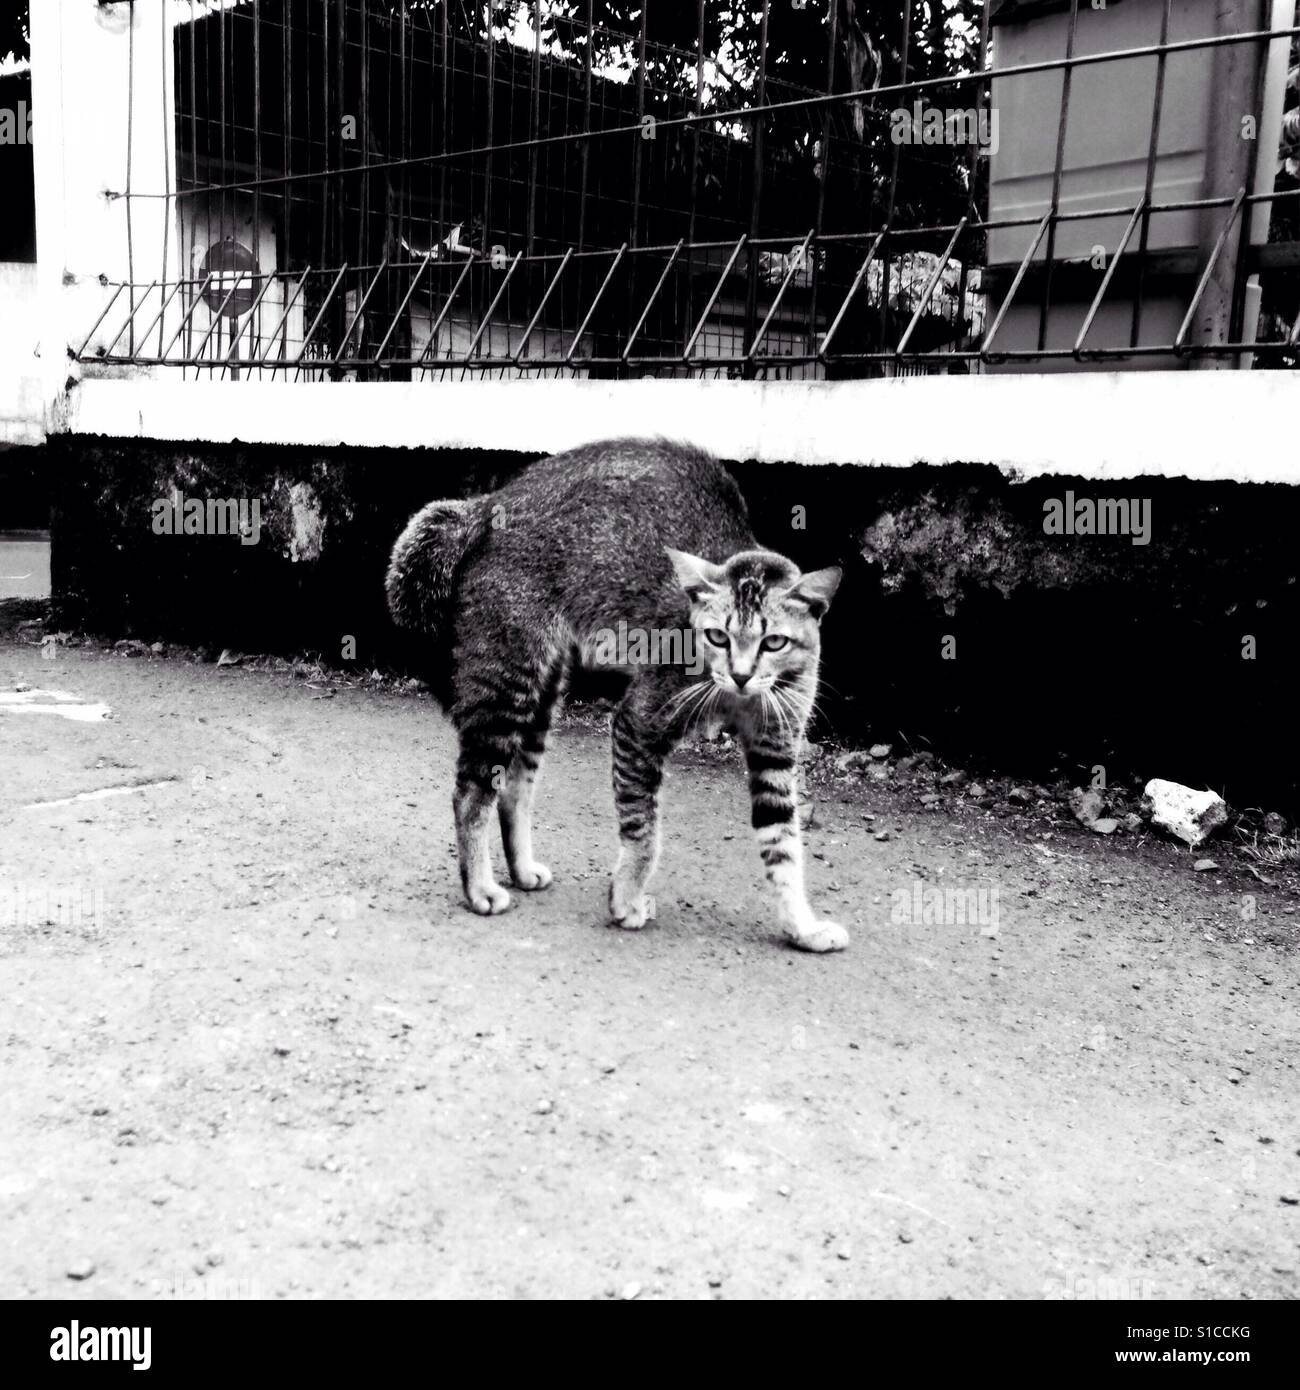 Angry Wild Cat on the Street - Black and White - Stock Image